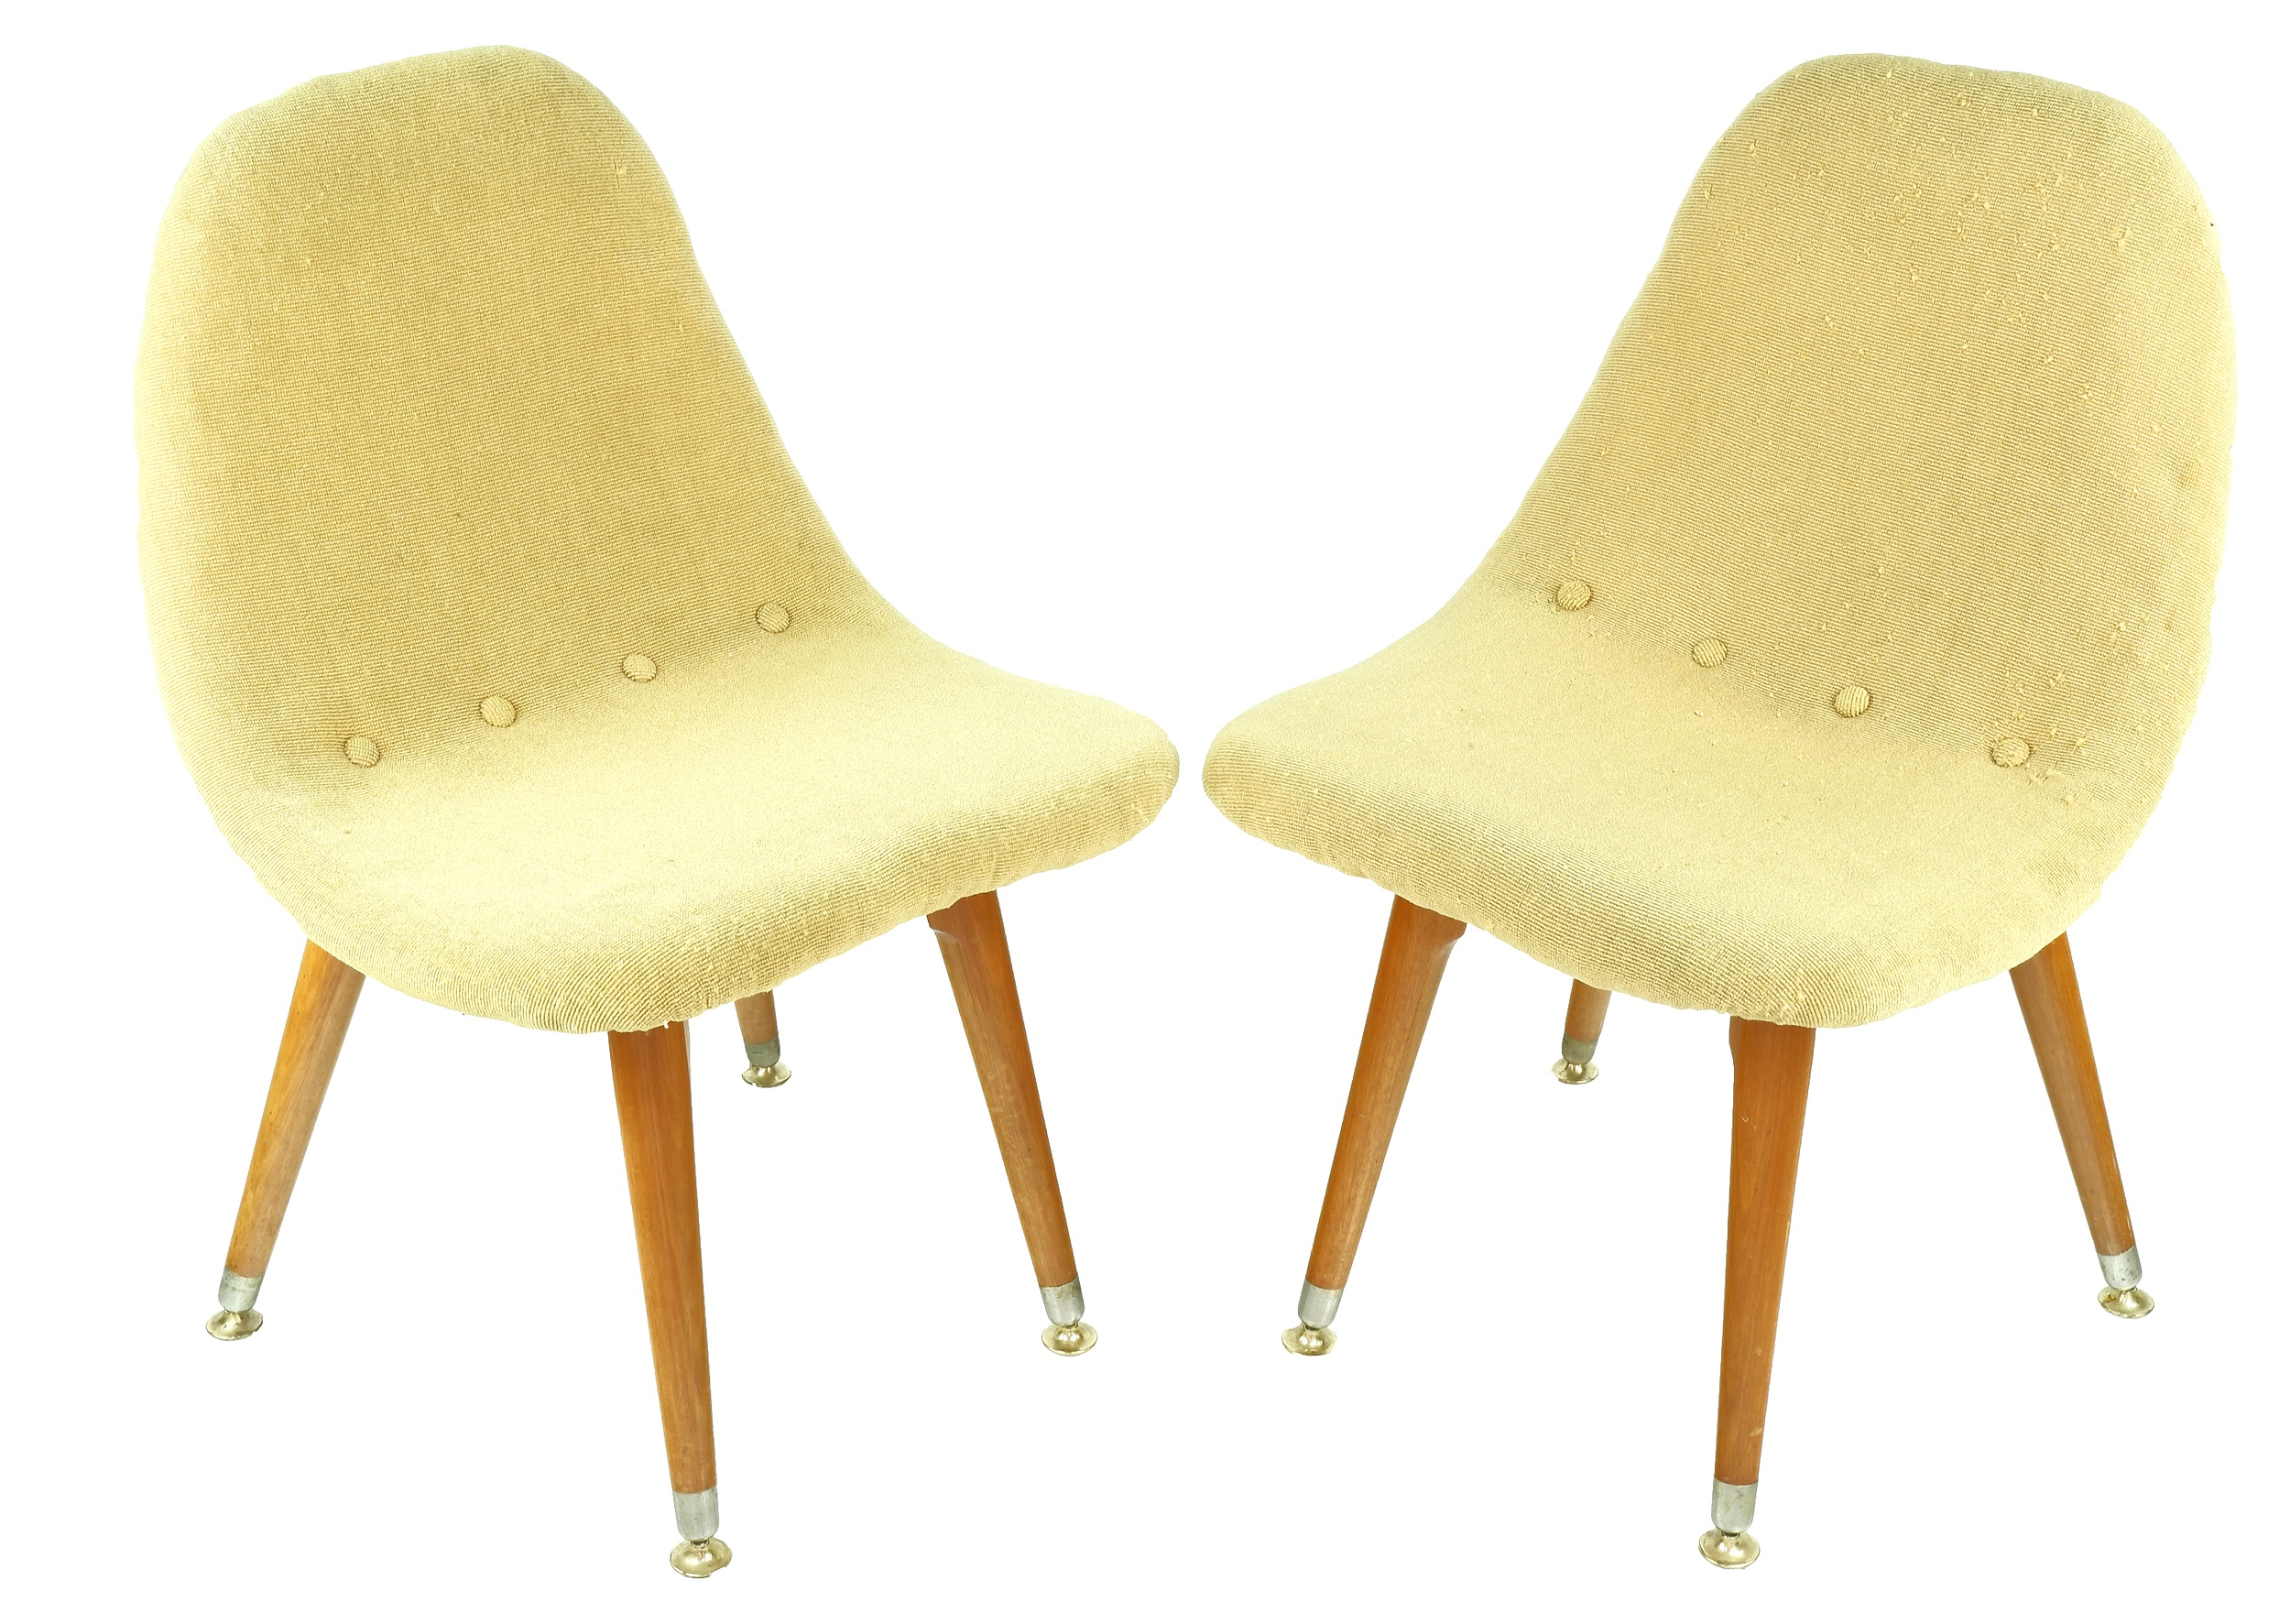 'Pair of Grant Featherston Style Side Chairs'